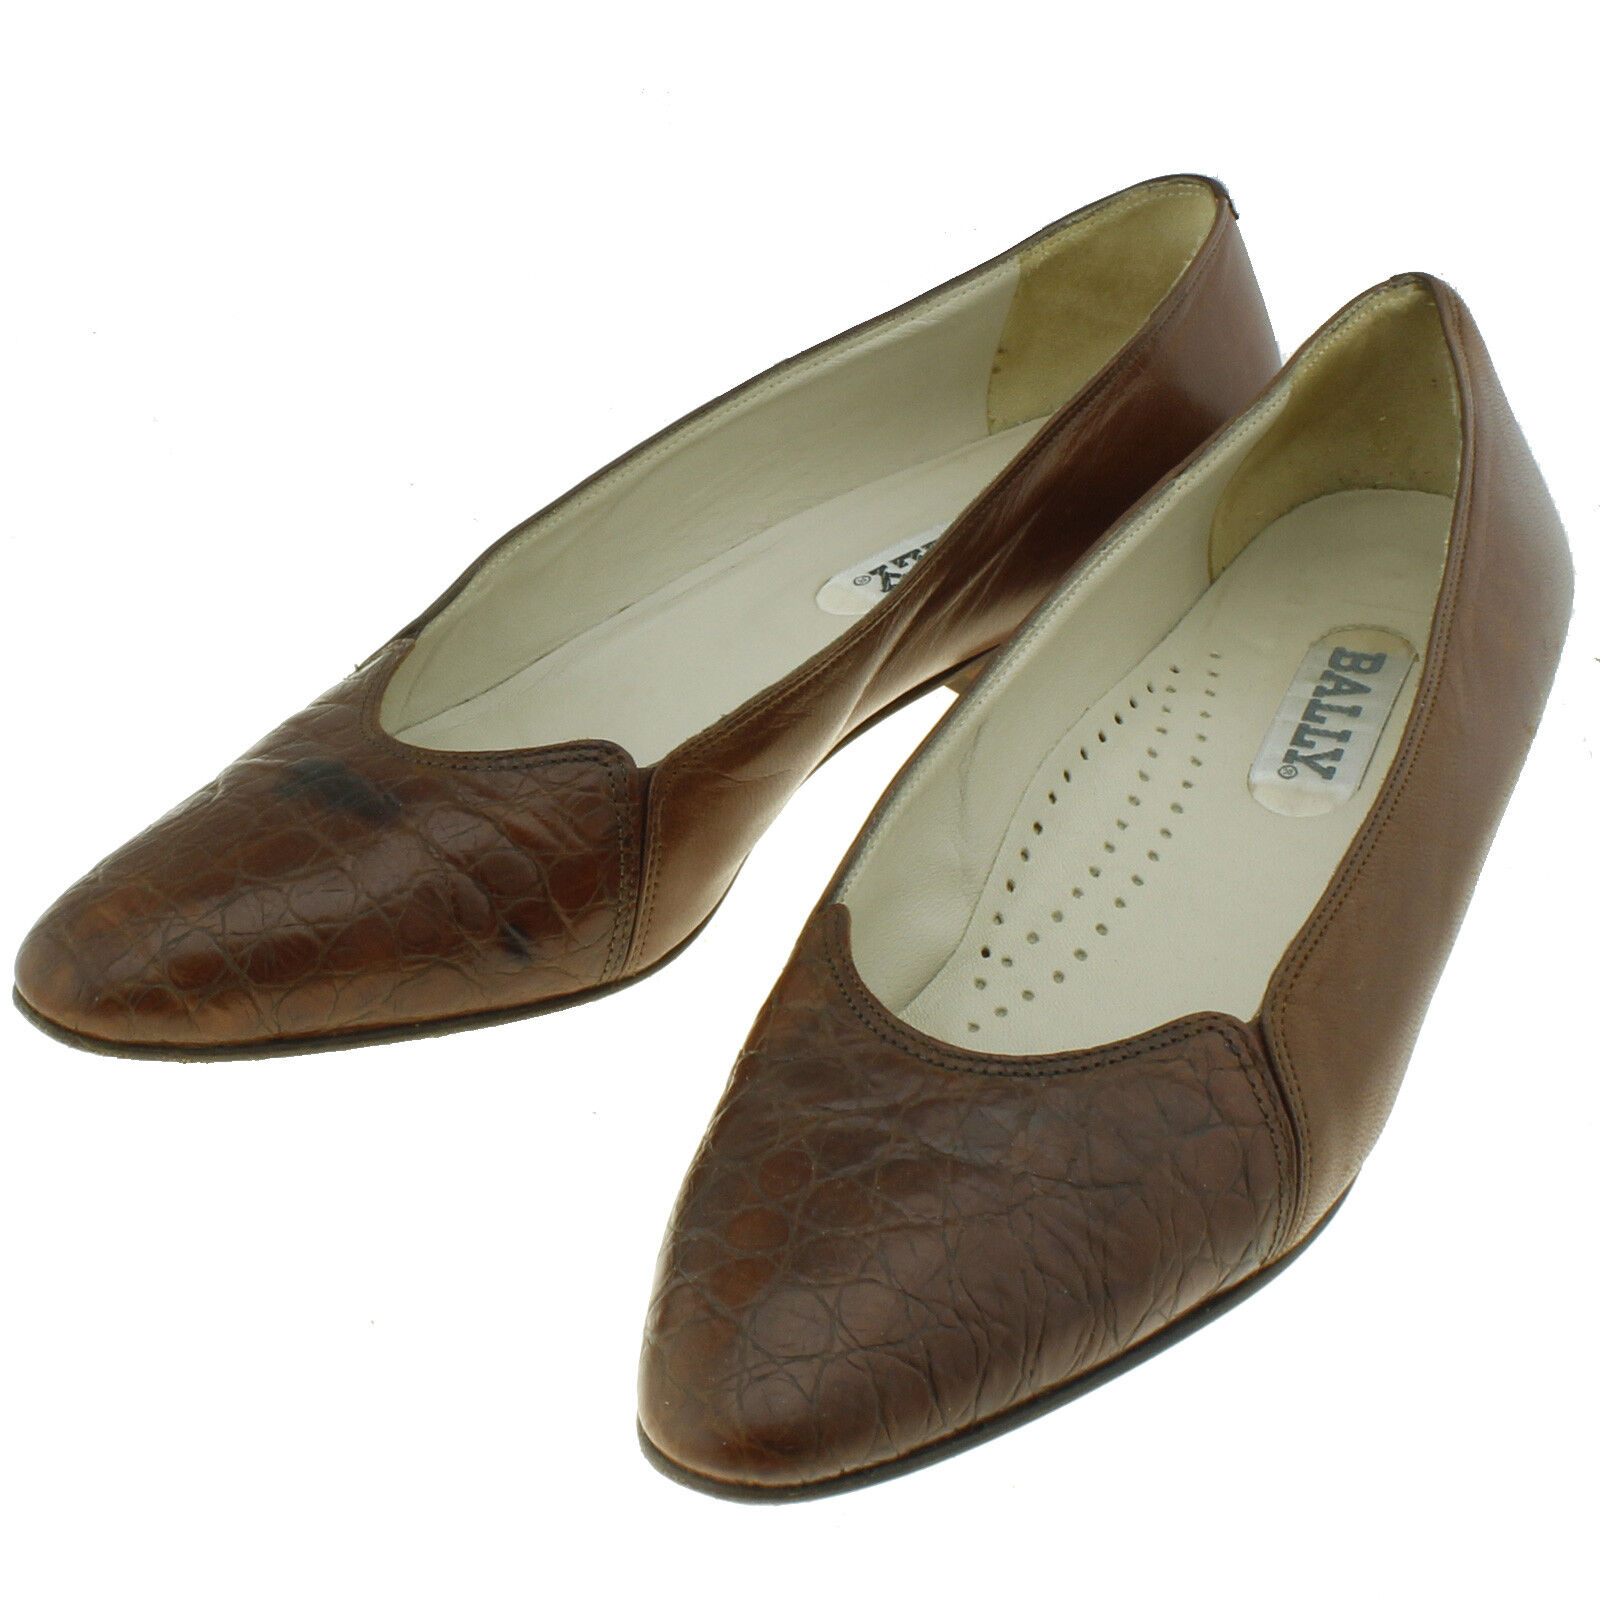 Bally Womens  Amber Brown Nappa Flats Dress Loafers Leather  Size 7N